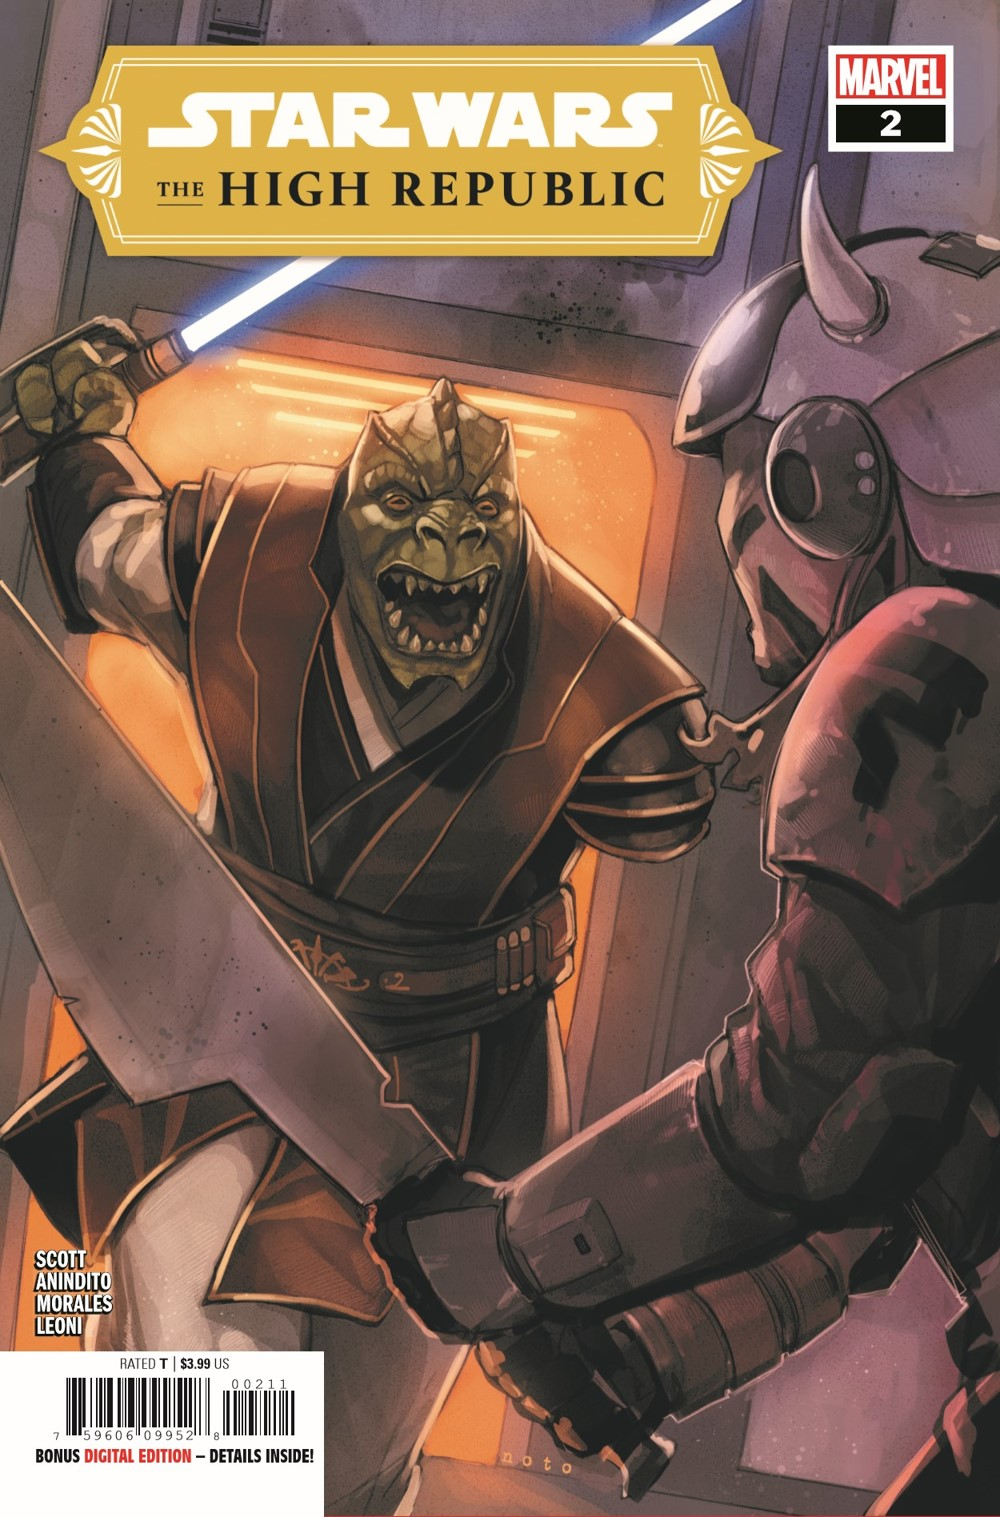 STWHIGHREP2021002_Preview-1 ComicList Previews: STAR WARS THE HIGH REPUBLIC #2